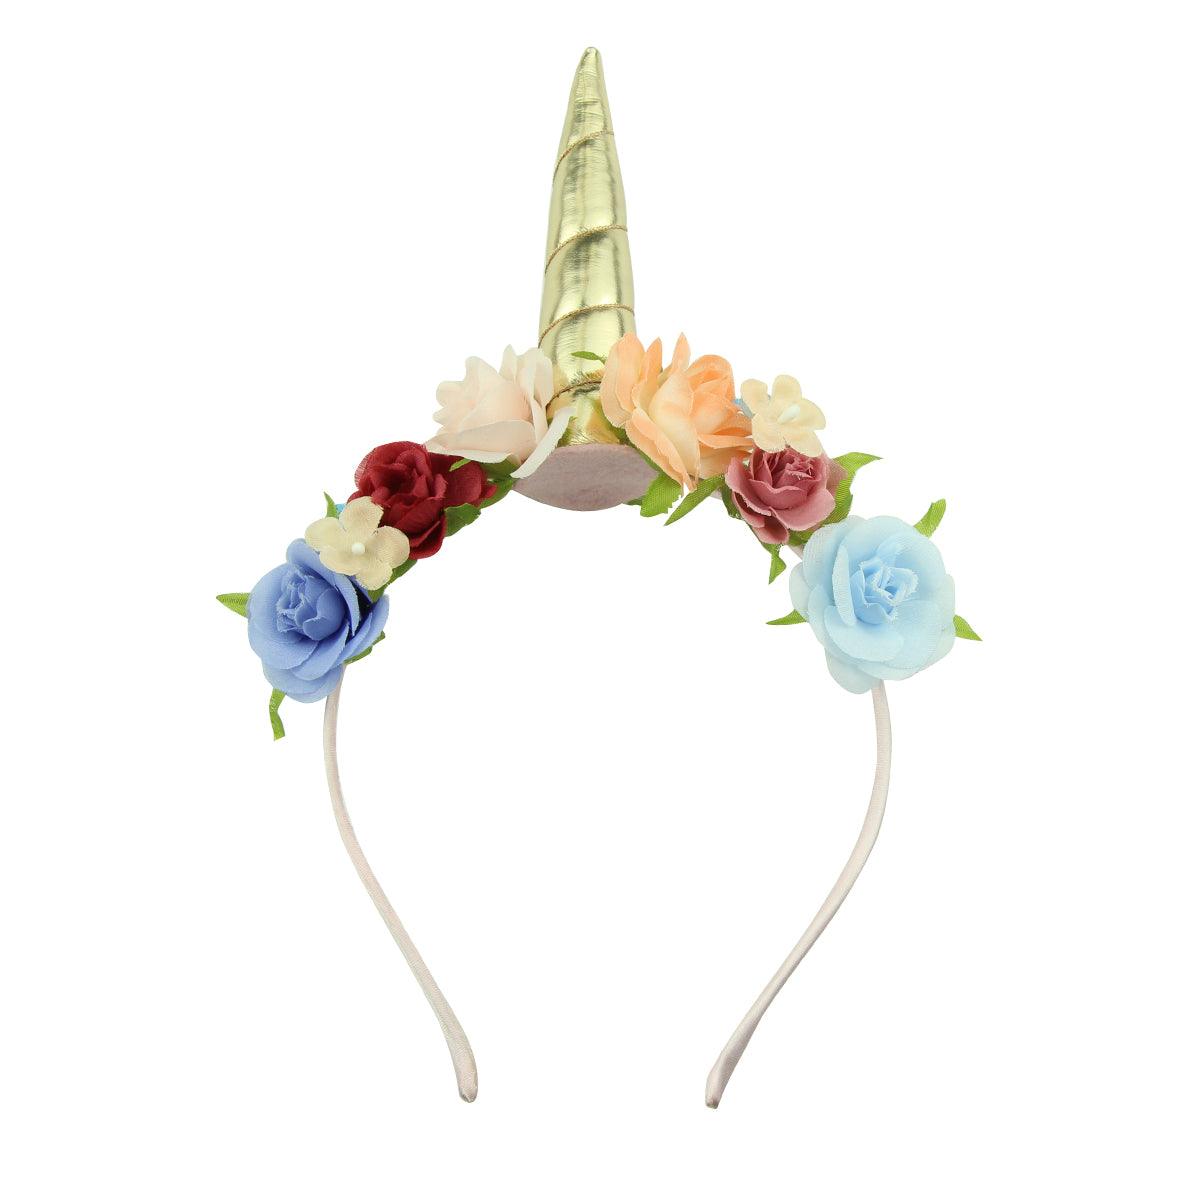 cute unicorn hair accessories headpiece girls gold unicorn headband hairband with flowers and leaves5909 - SOHOBUCKS CO.,LIMITED